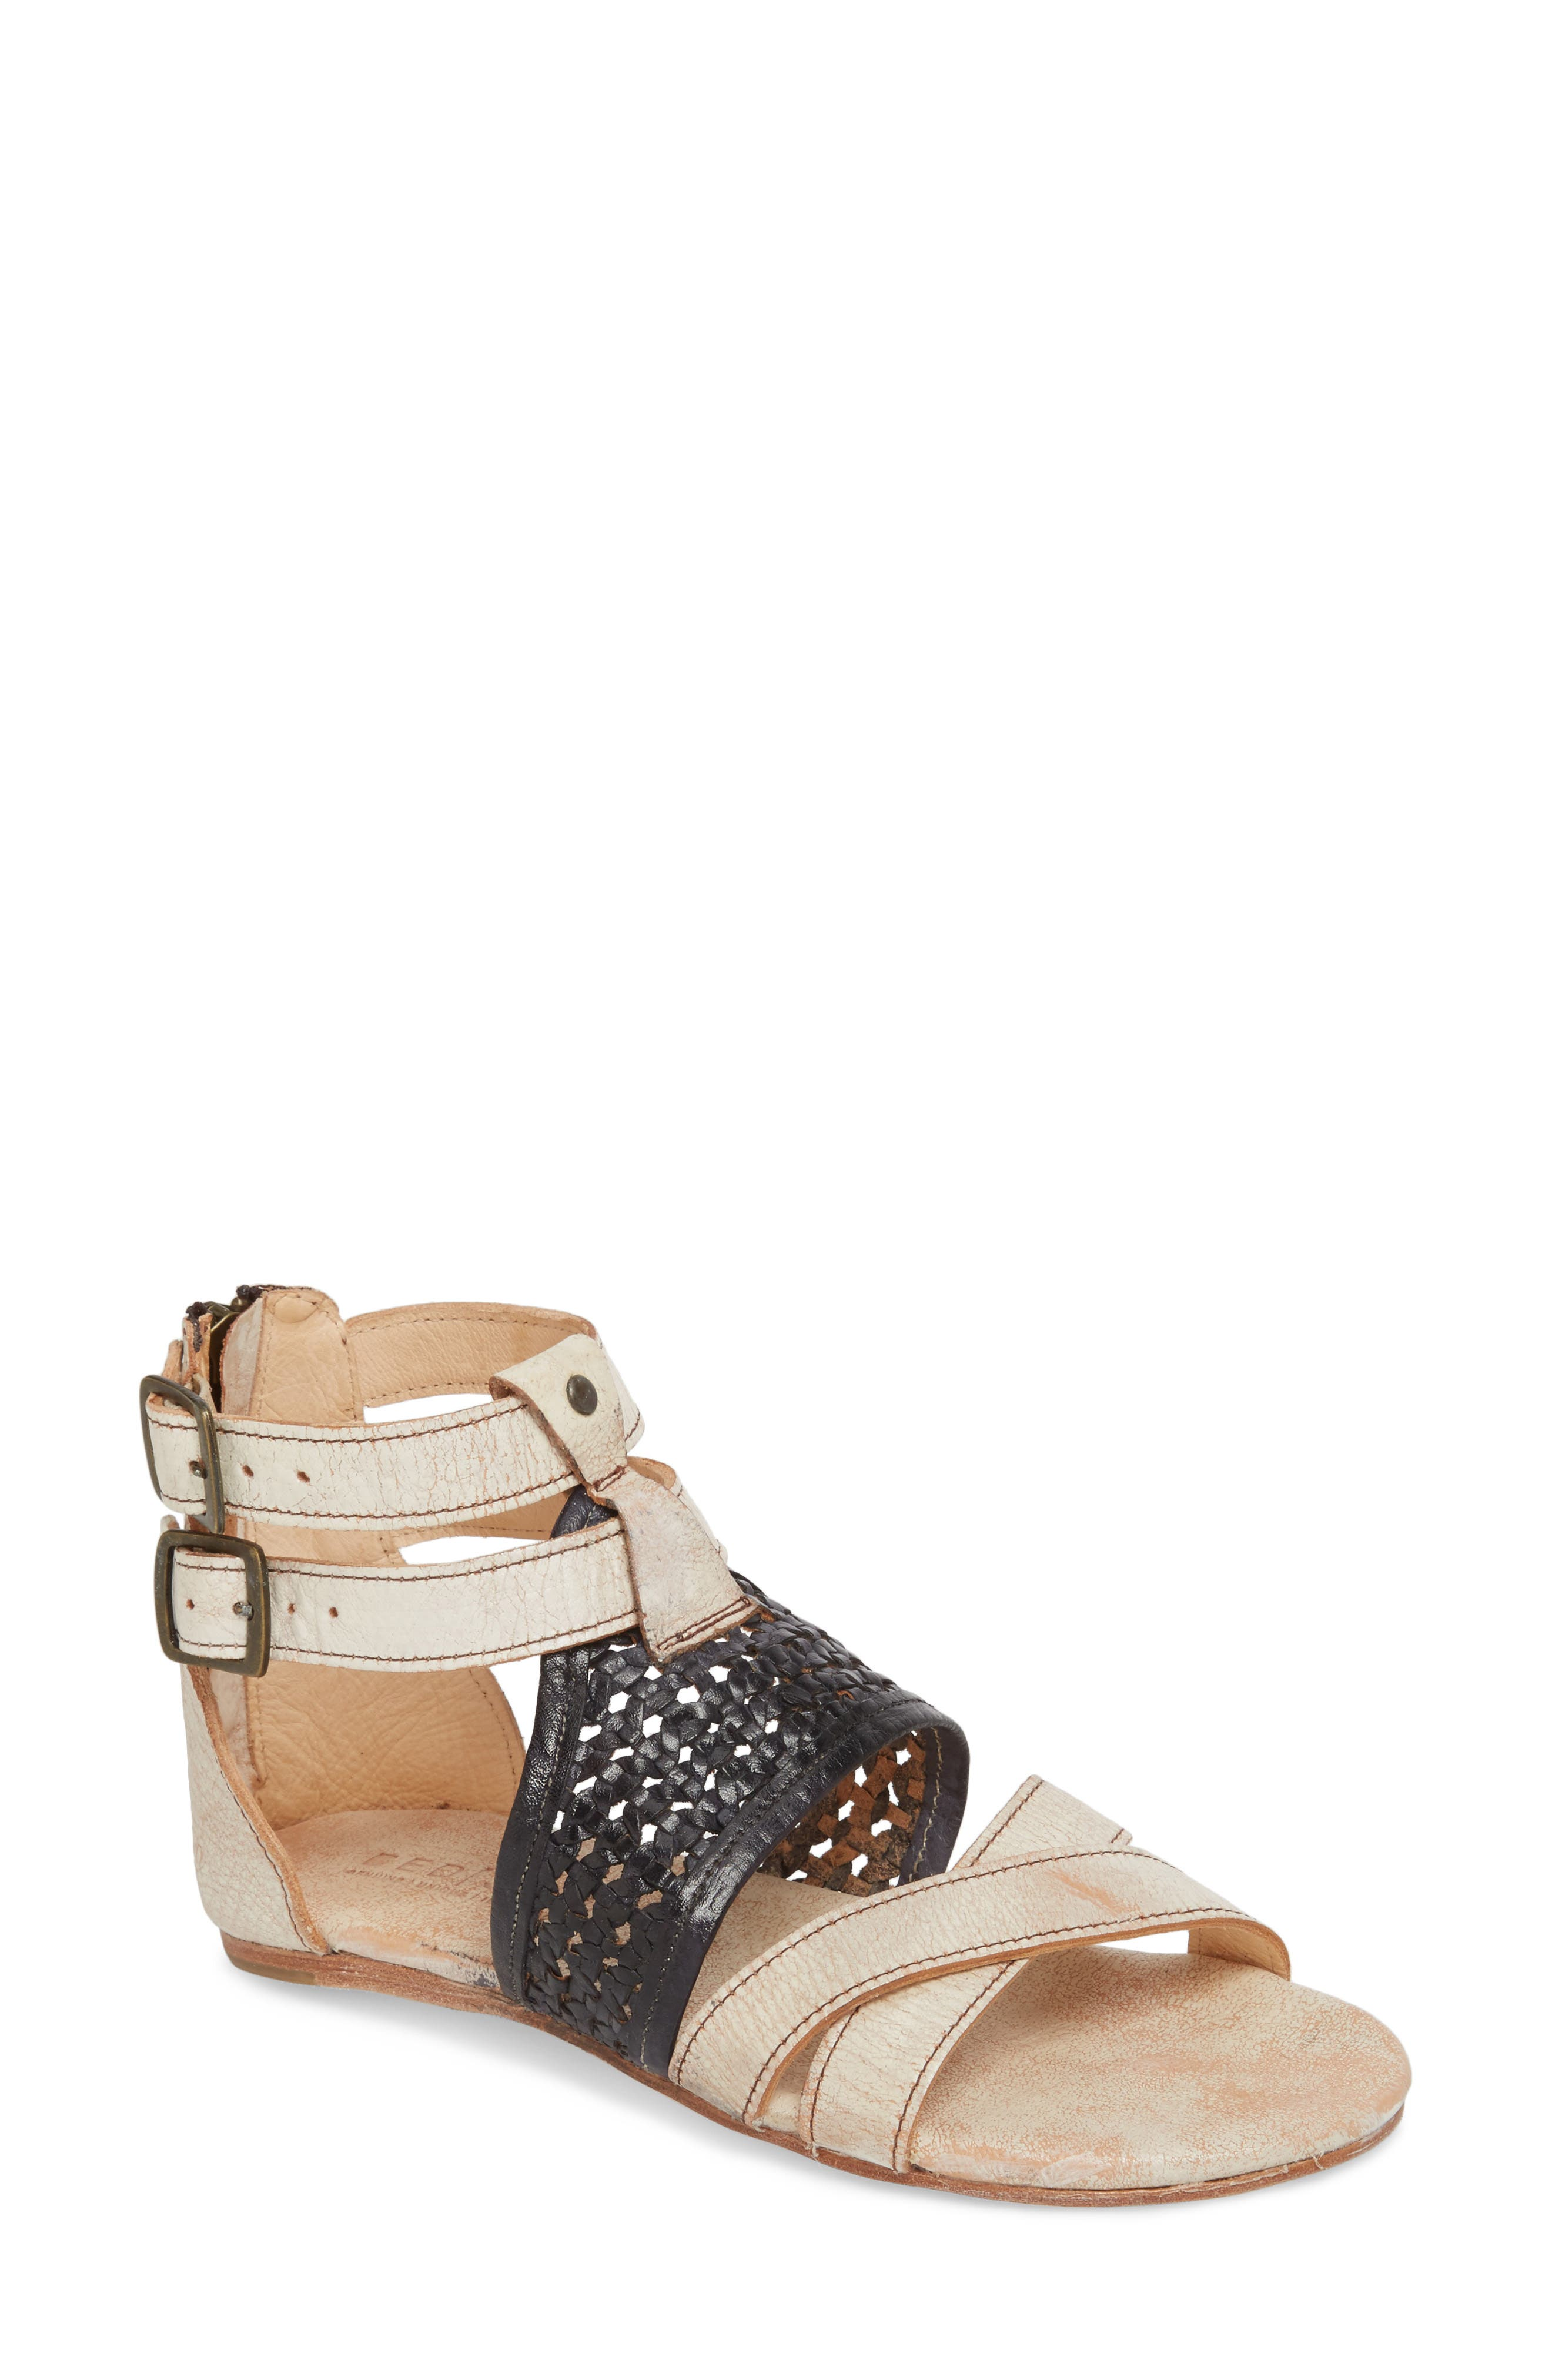 BED STU Capriana Sandal, Main, color, NECTAR/ NAVY LEATHER